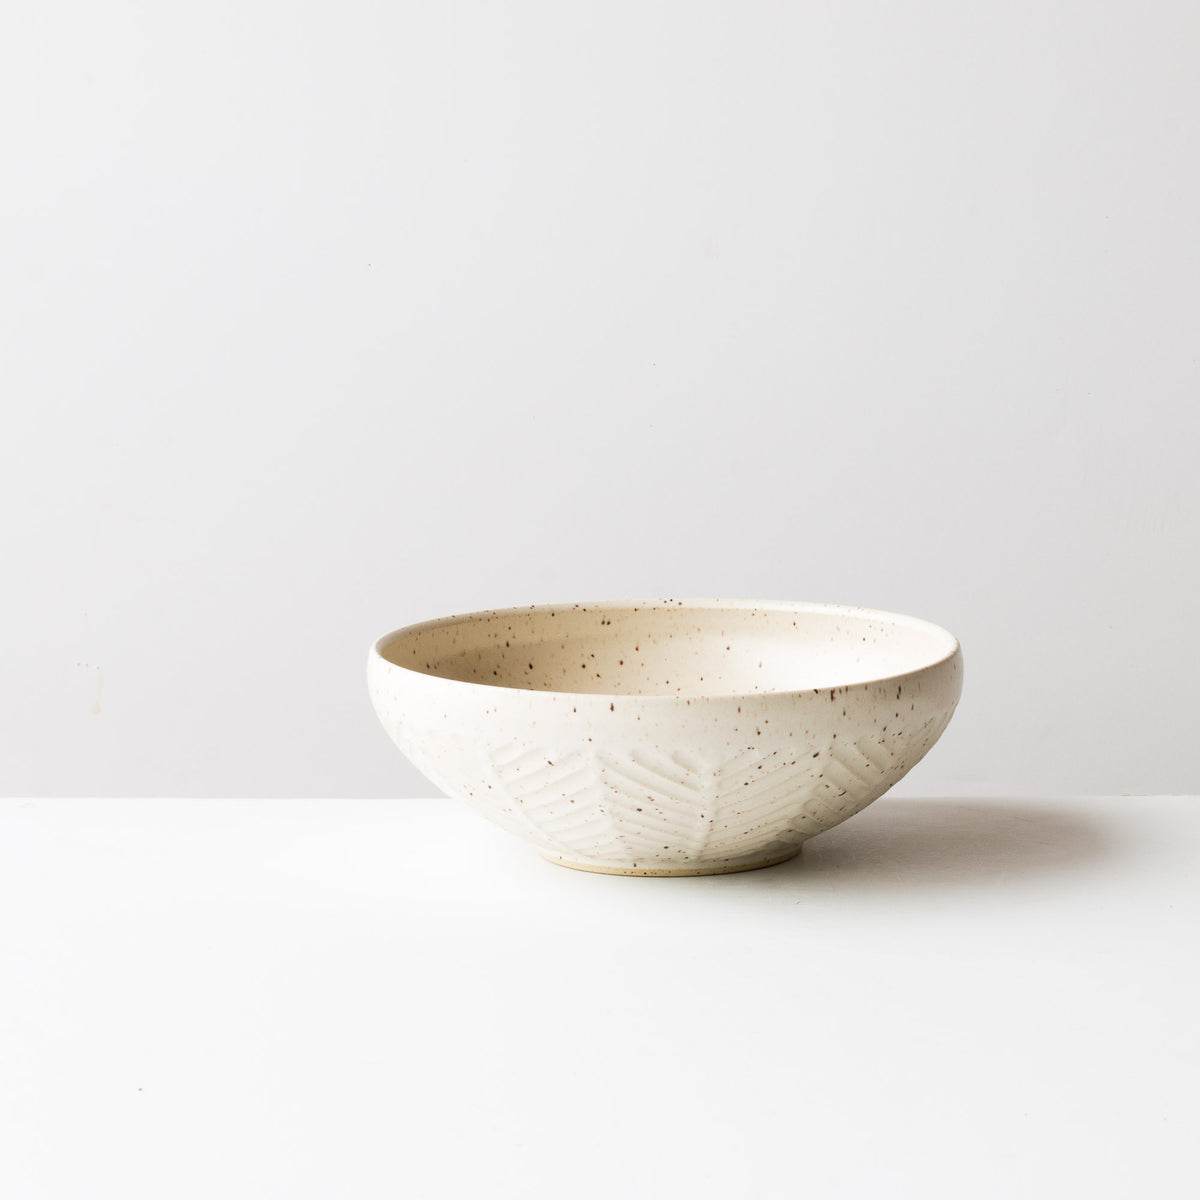 Speckled Off-White - Handmade Herringbone Pattern Ceramic Bowl - Handmade in Canada By Christian Roy - Chic & Basta